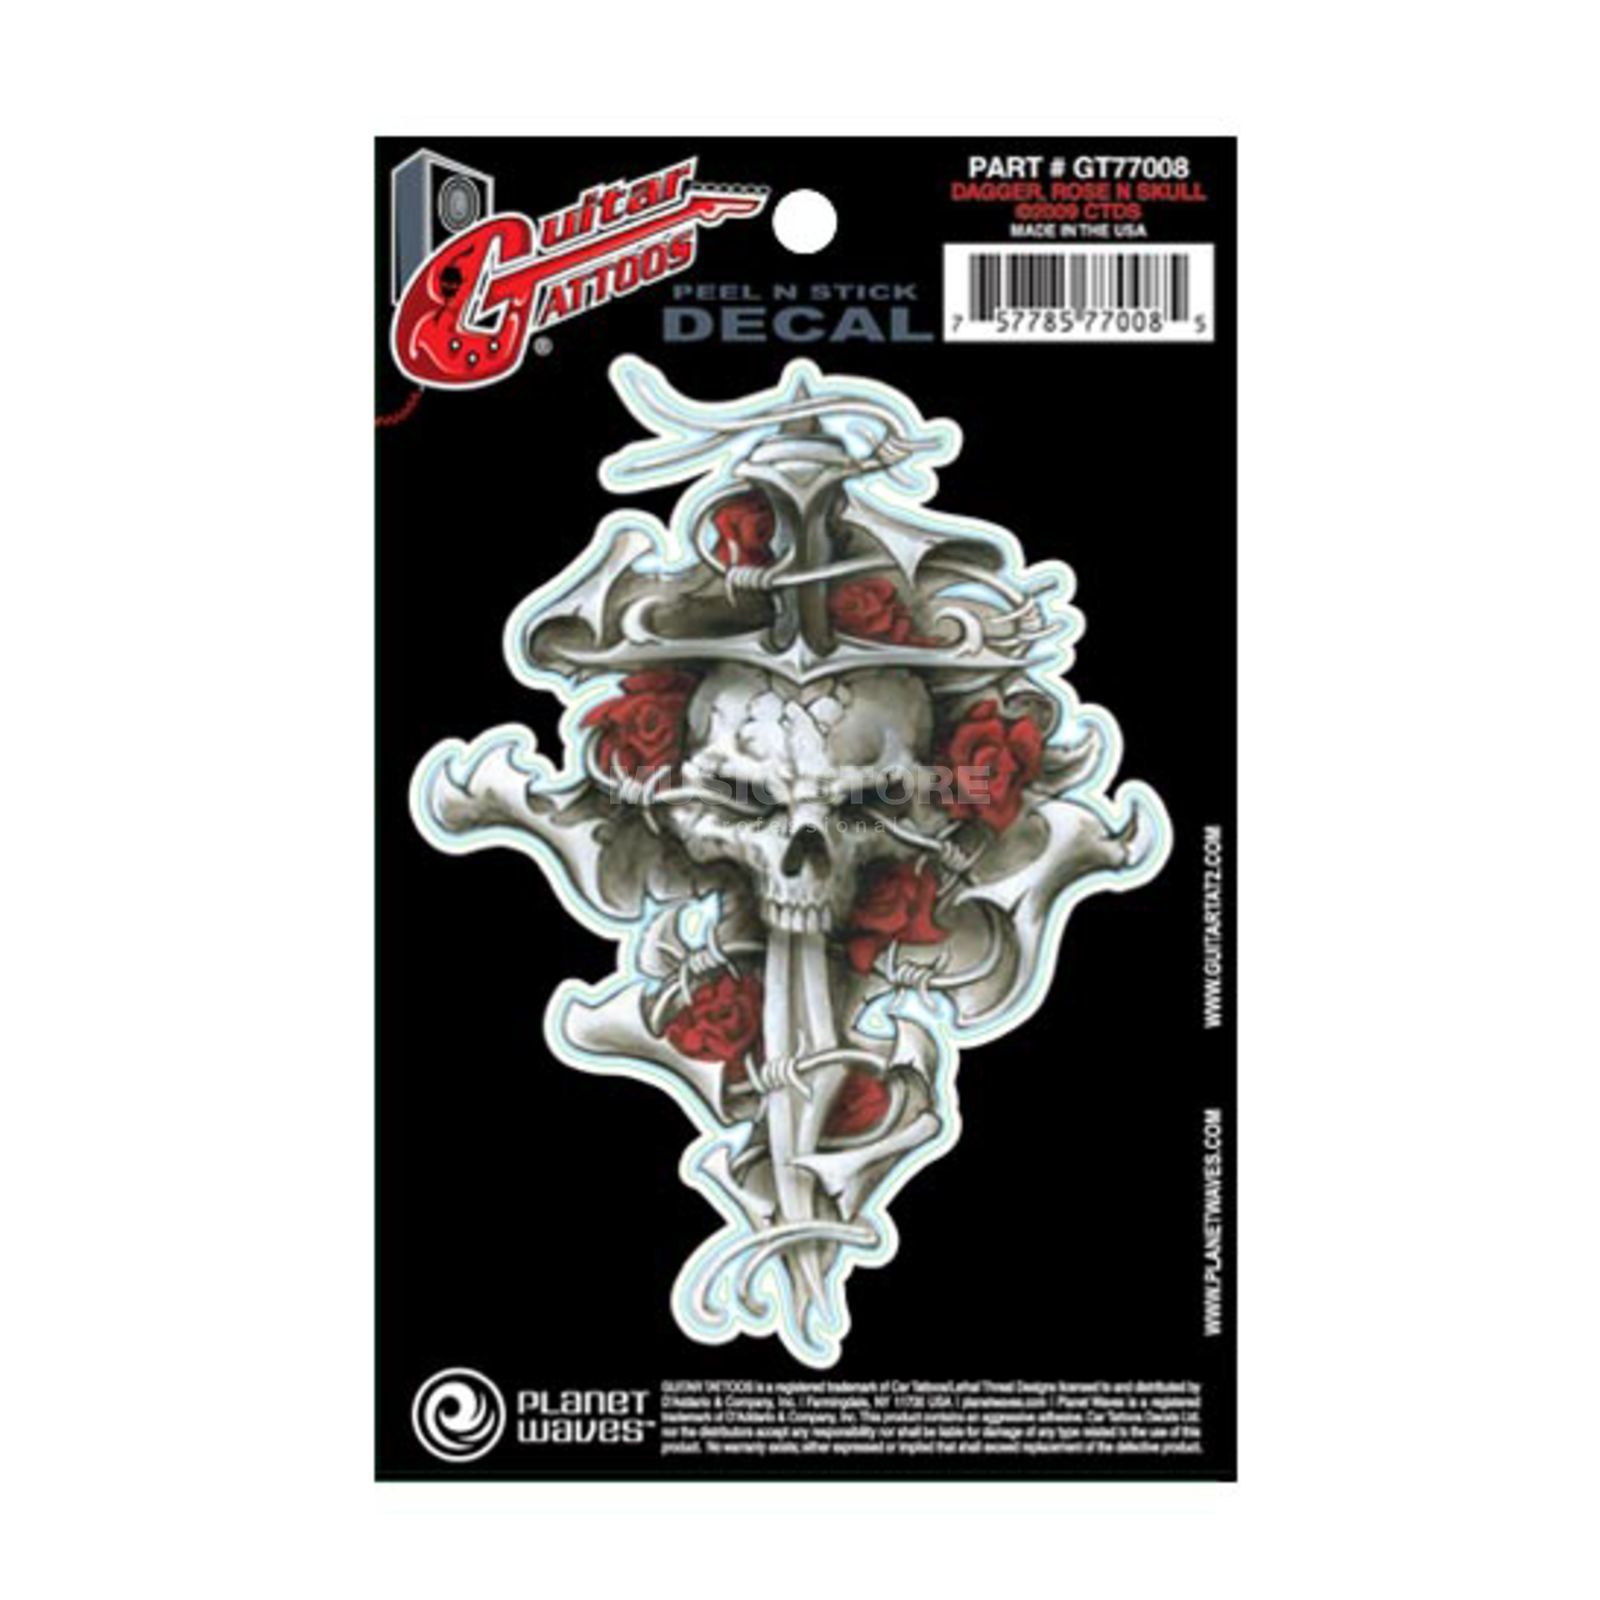 D'Addario Planet Waves Guitar Tattoo - Dagger Rose Skull, GT77008 Produktbillede